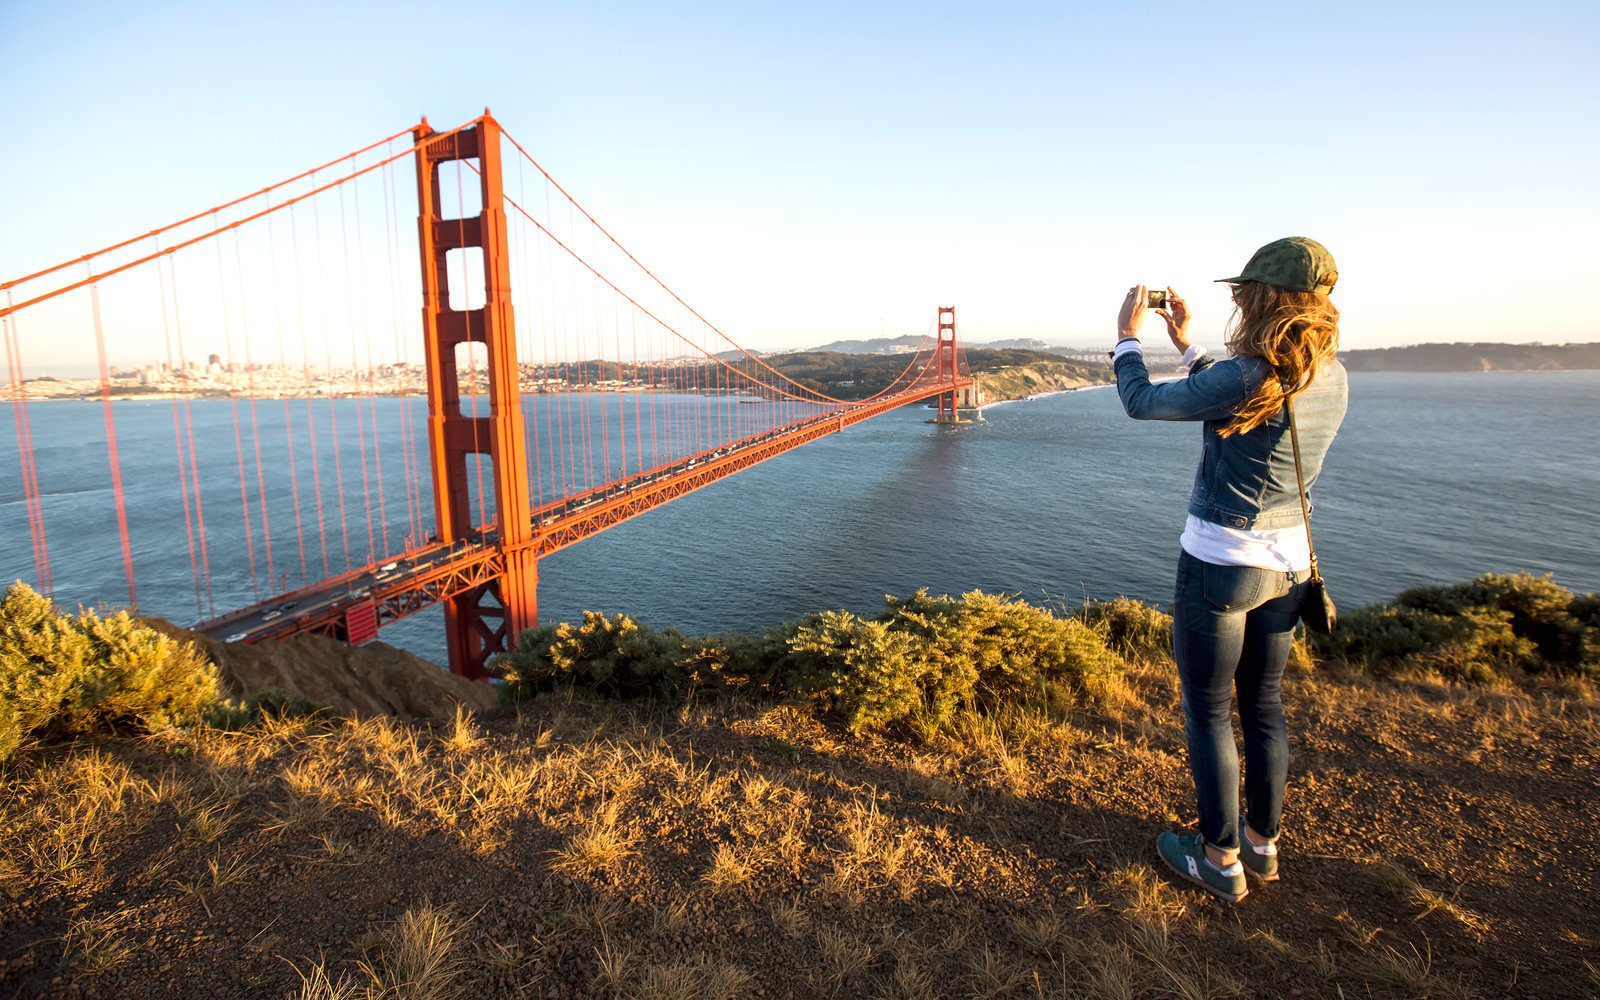 Best U.S. Cities for Sights and Landmarks